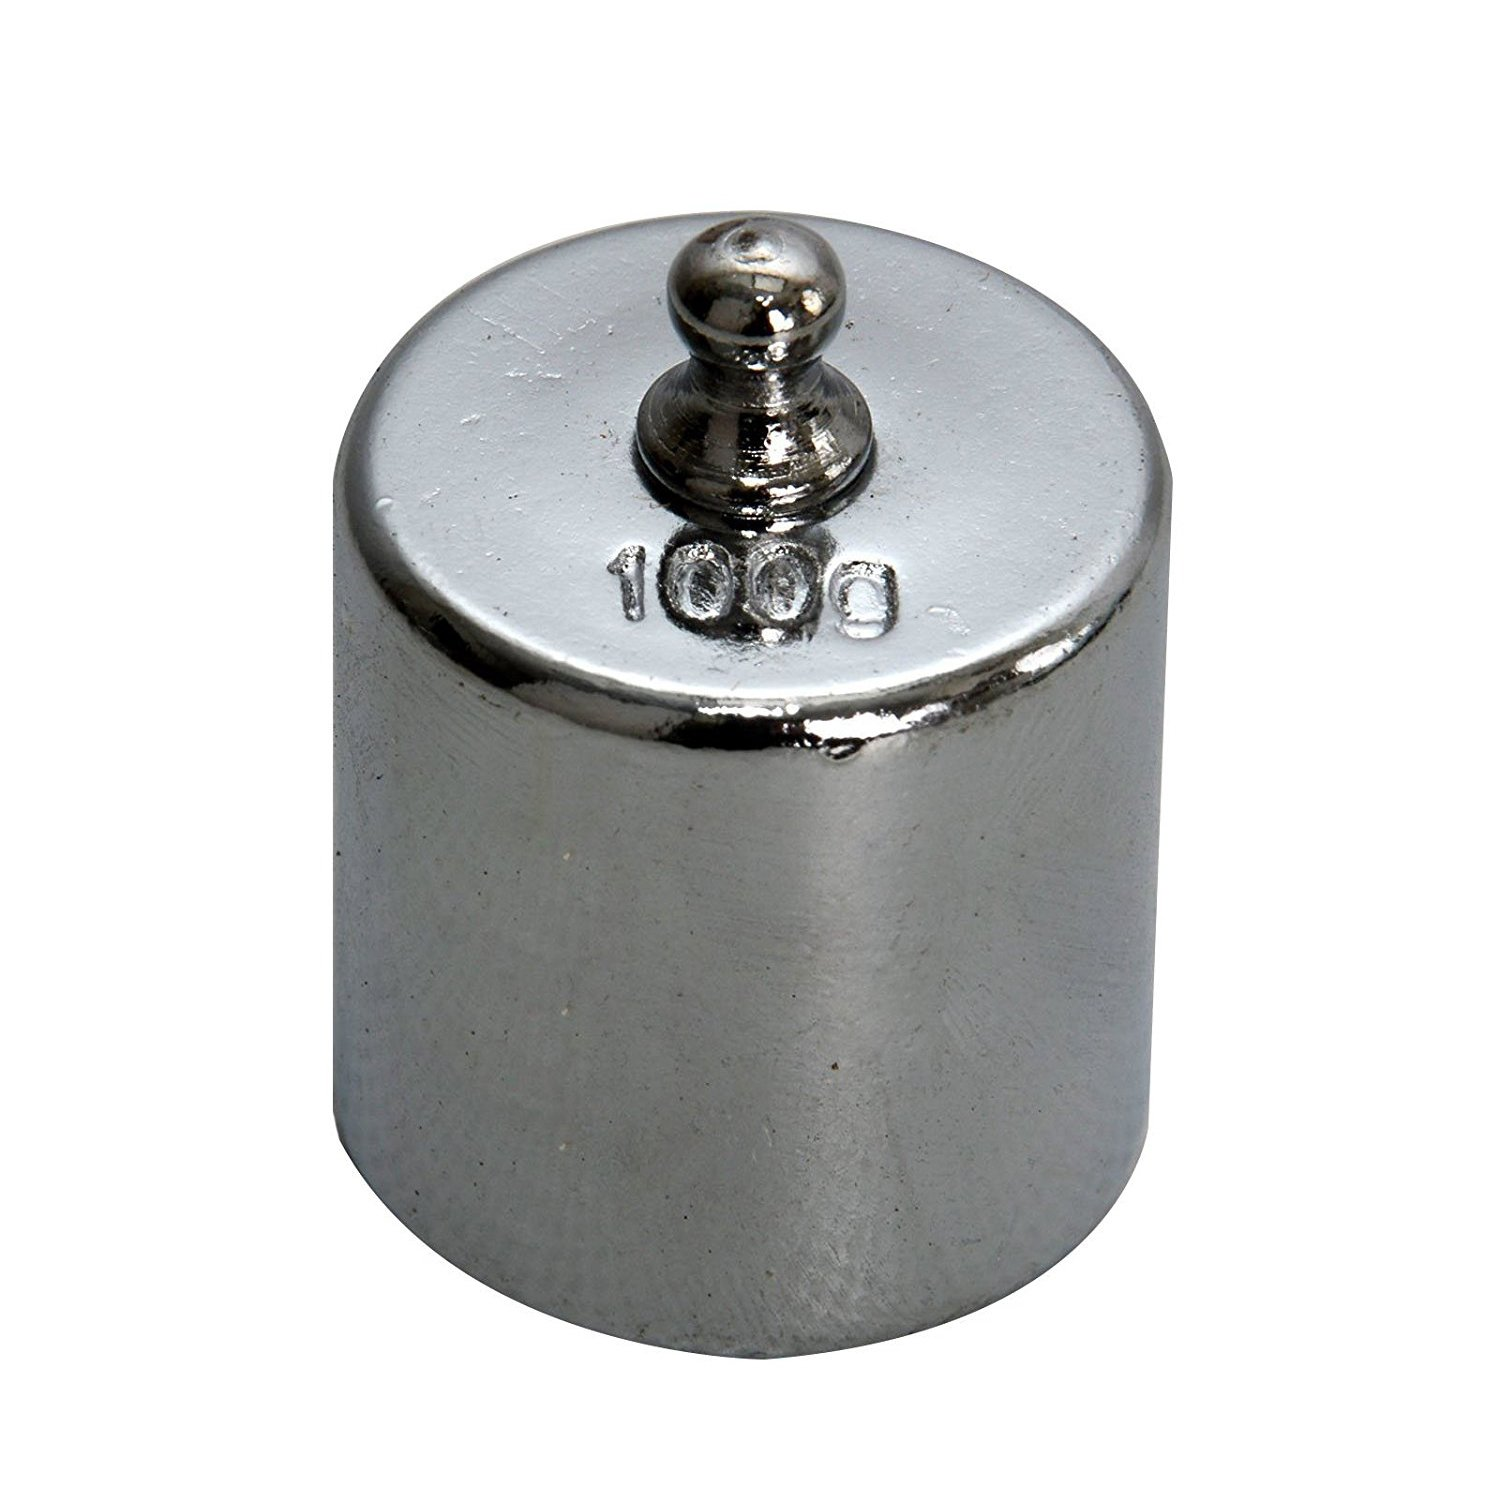 New Prime Scales 100 gram Calibration Weight Adjustable